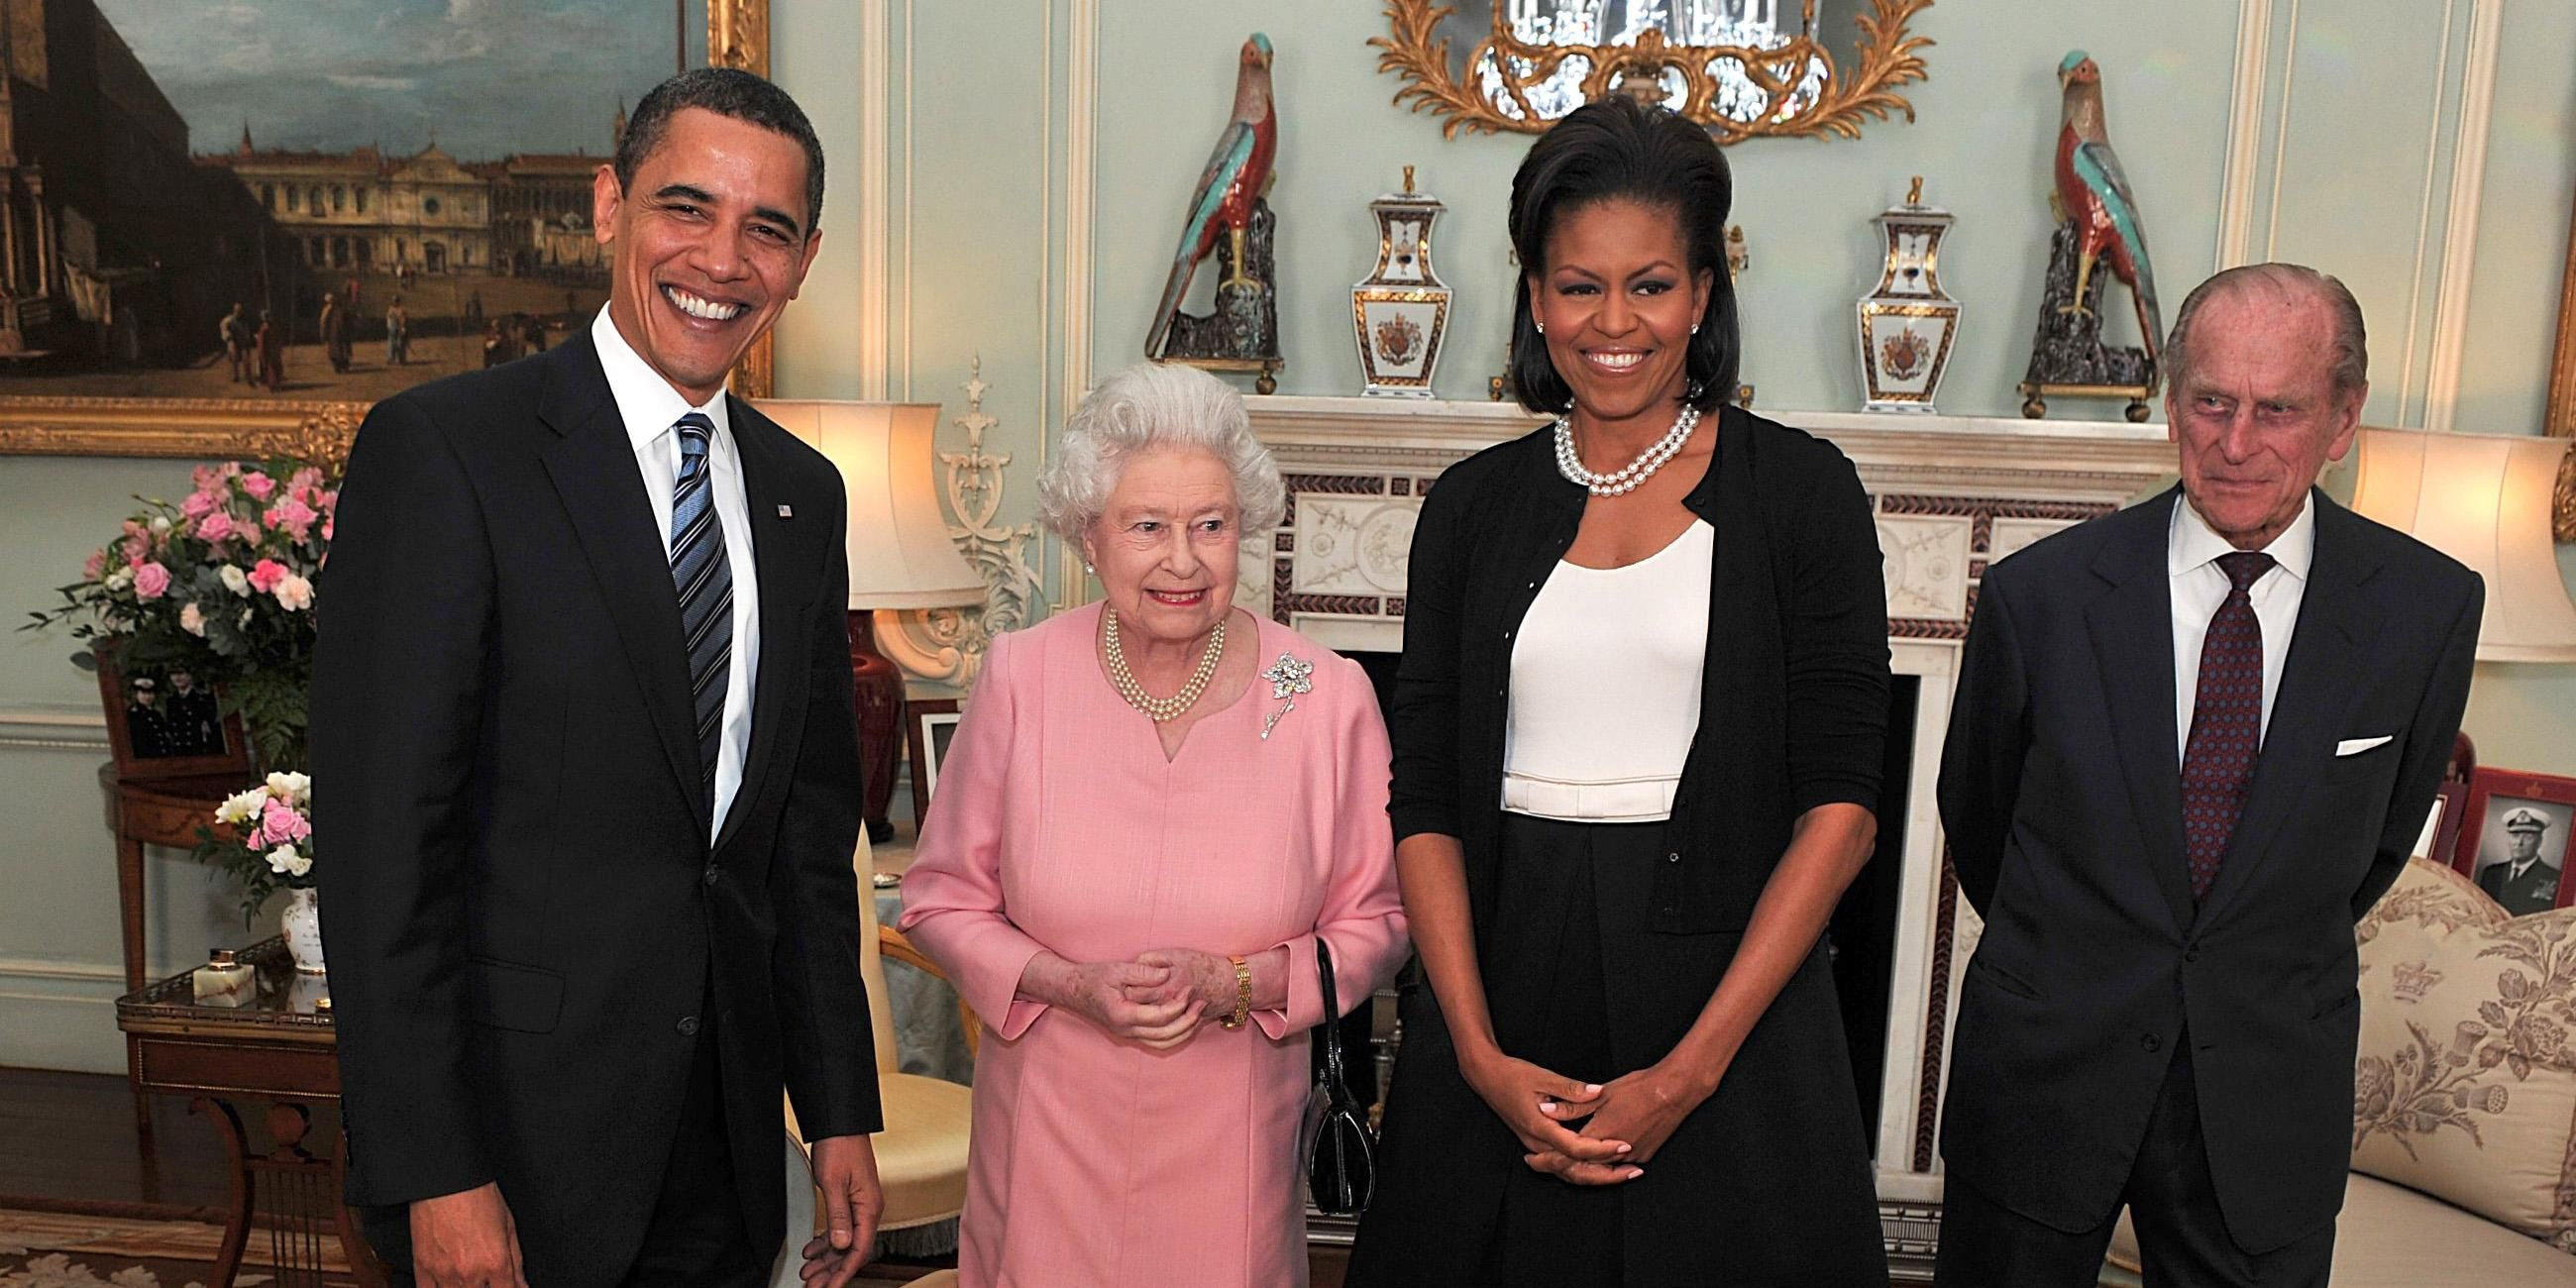 Queen Elizabeth II Hosts A Reception For World Leaders Attending The G20